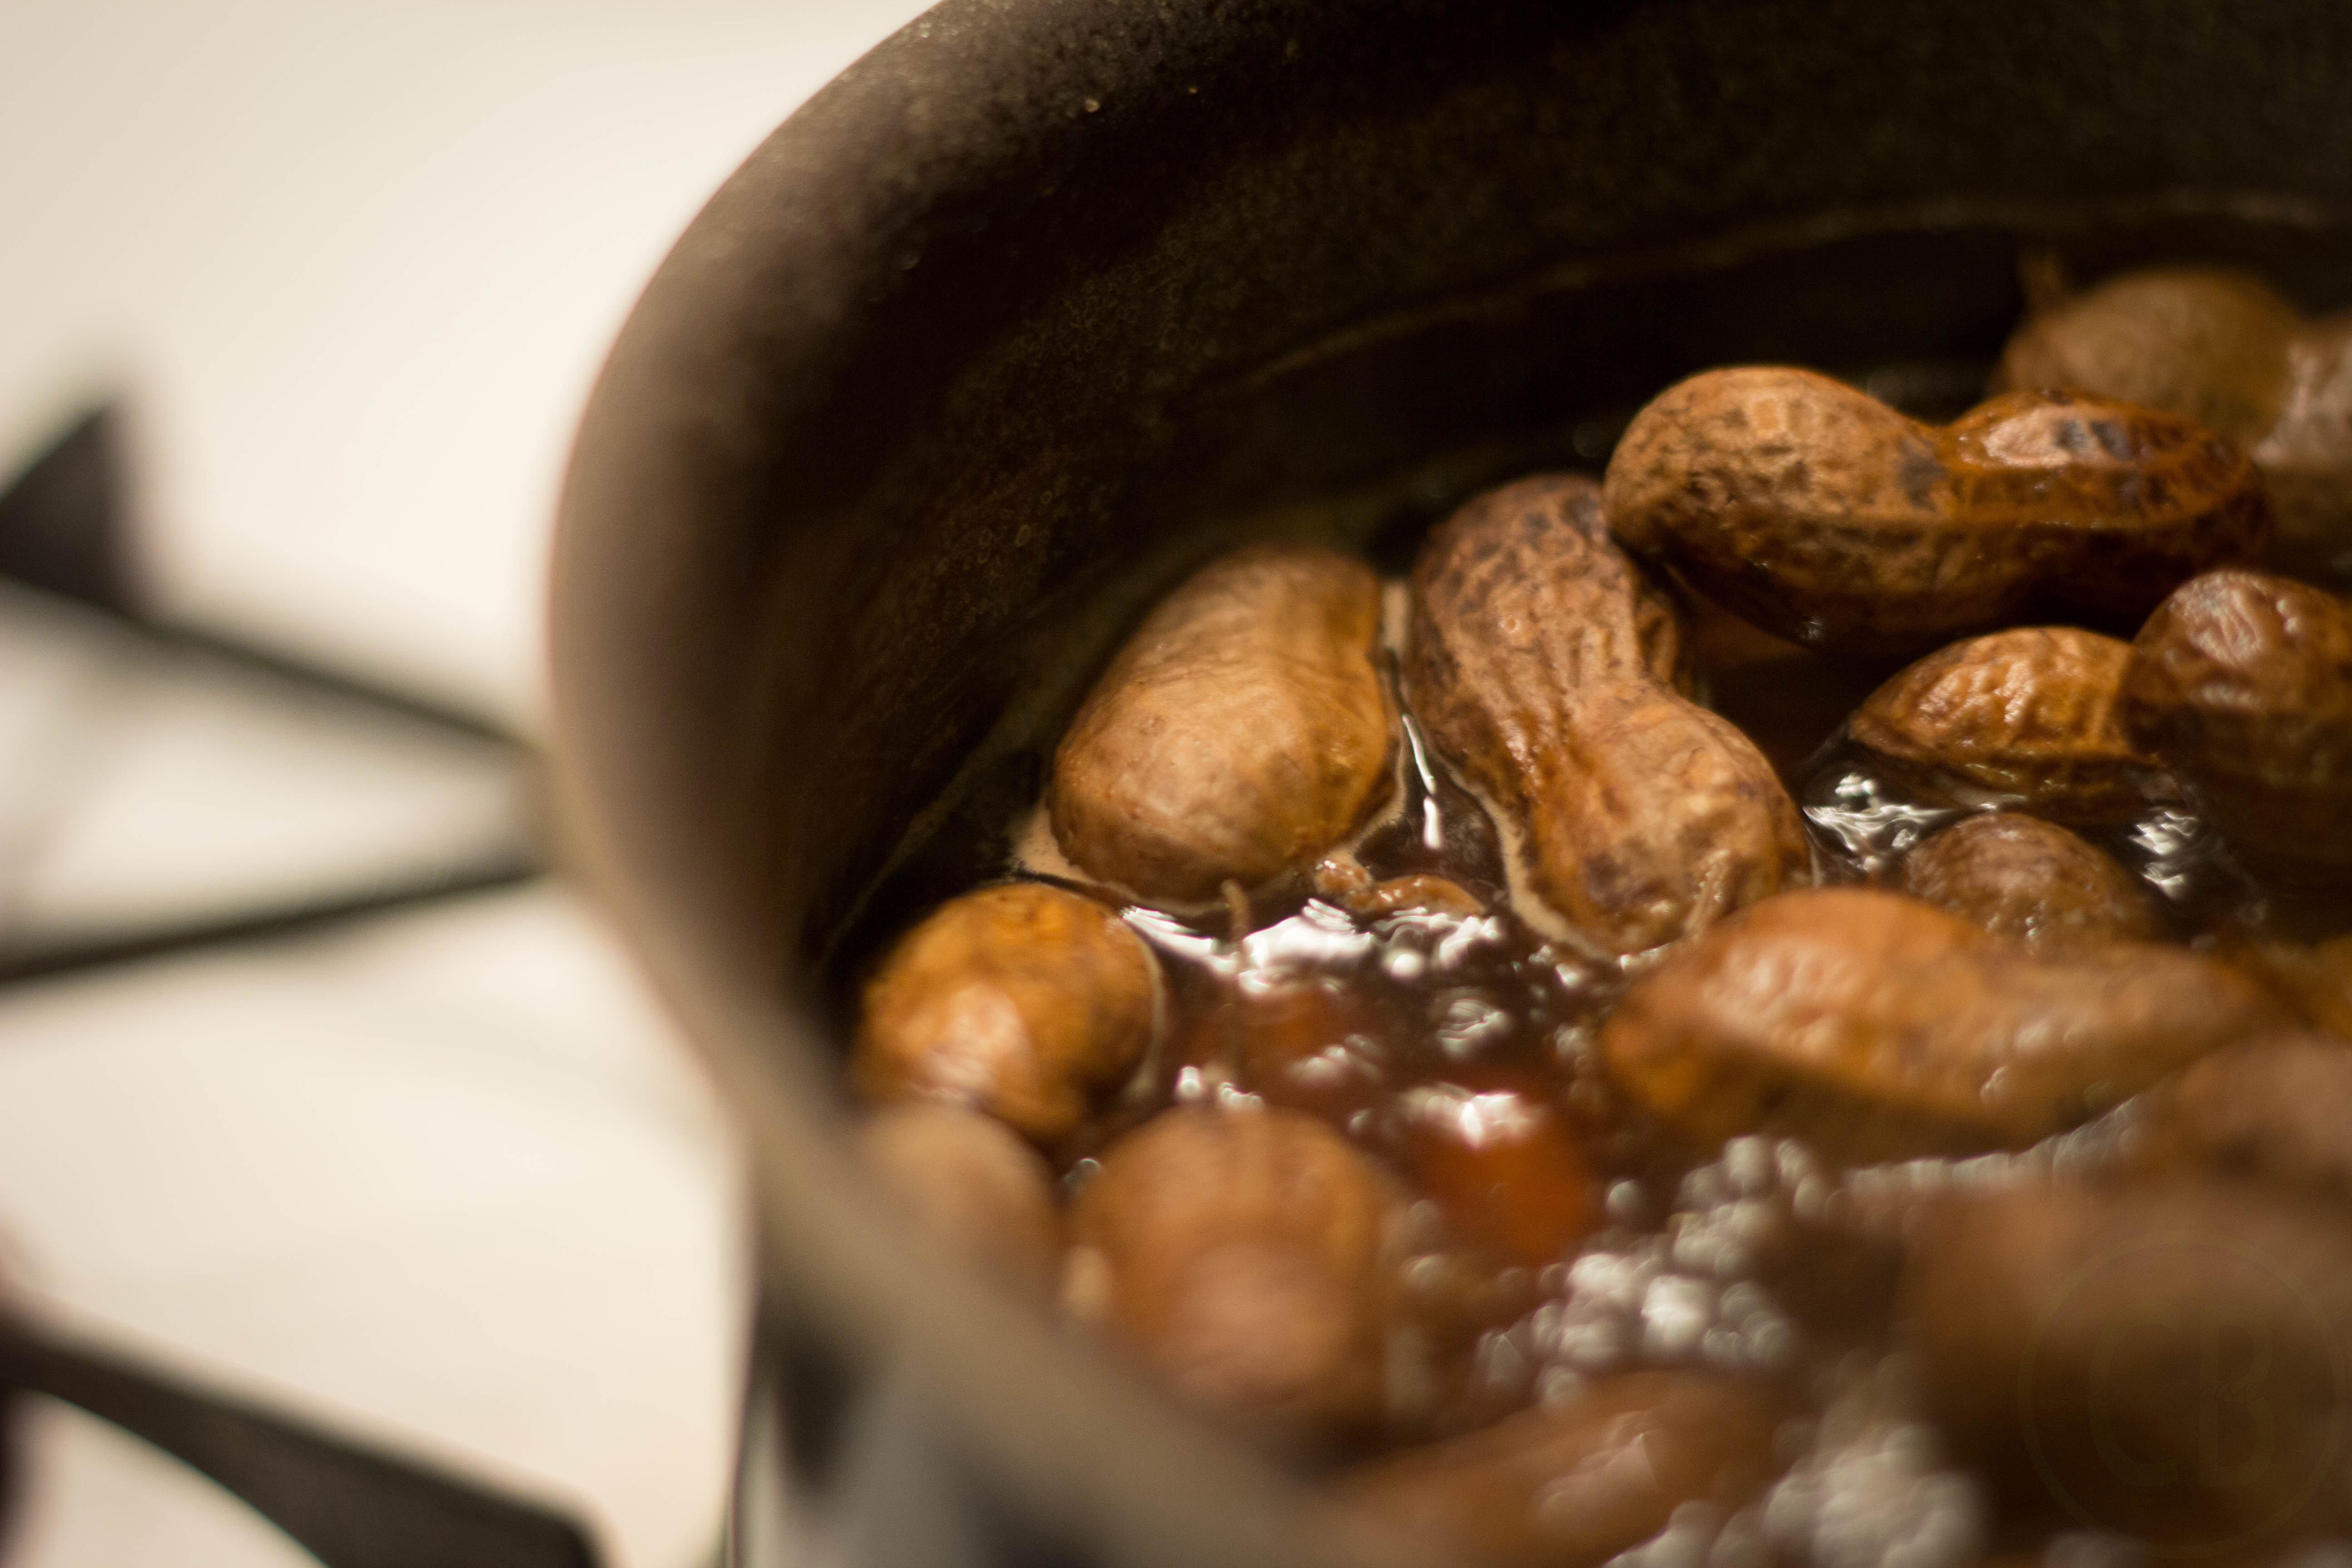 Boiled Peanuts are a southern tradition. You have to give them a try. They are worth the wait.